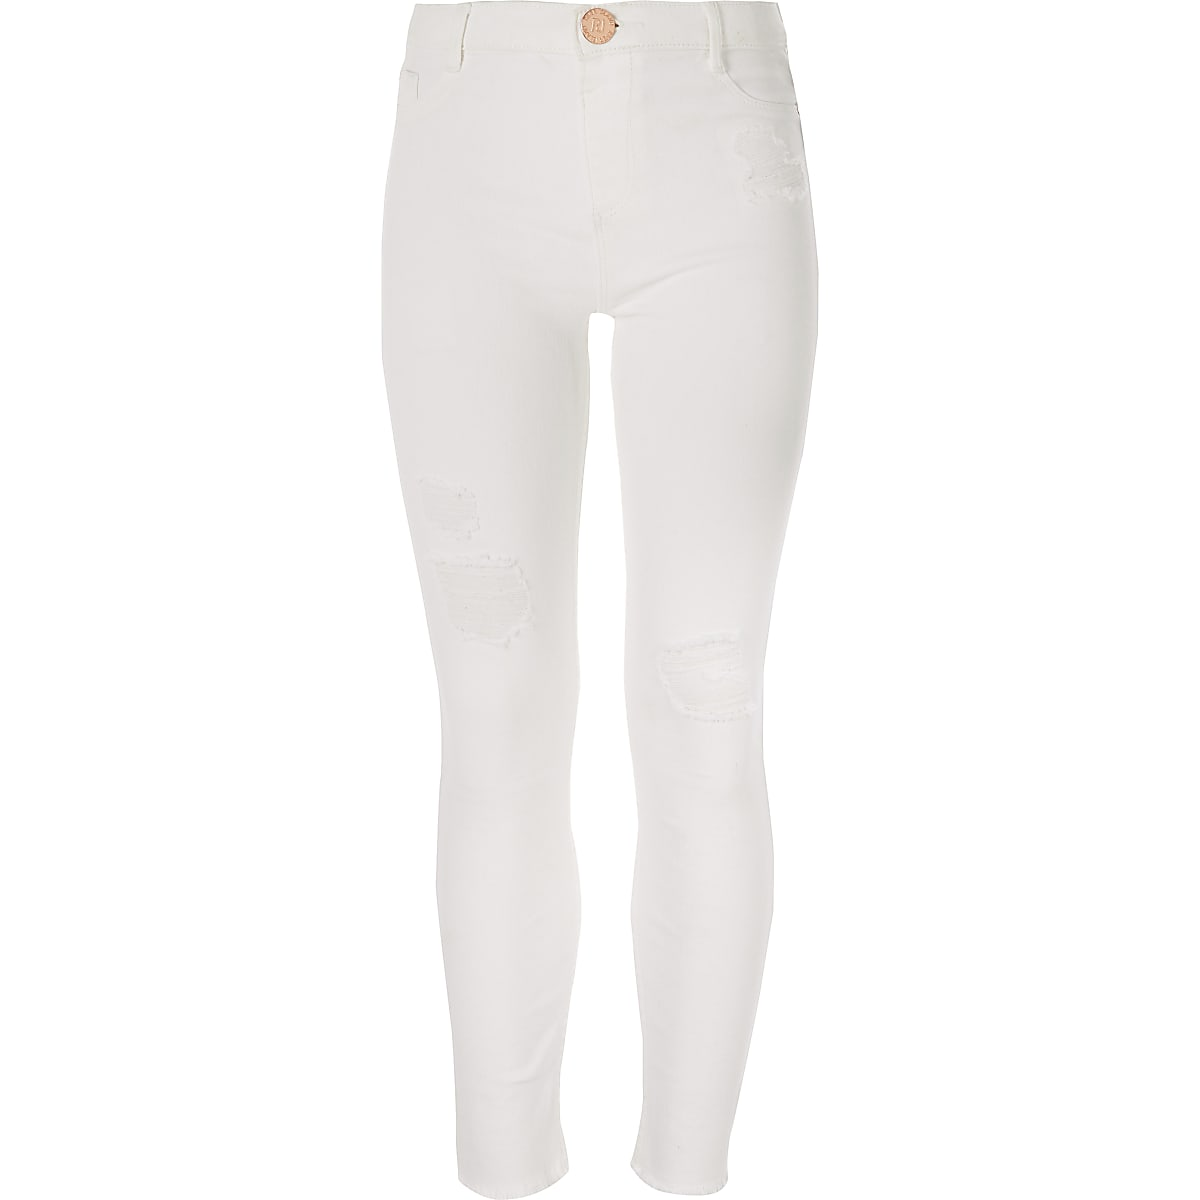 Girls white Molly ripped mid rise jegging